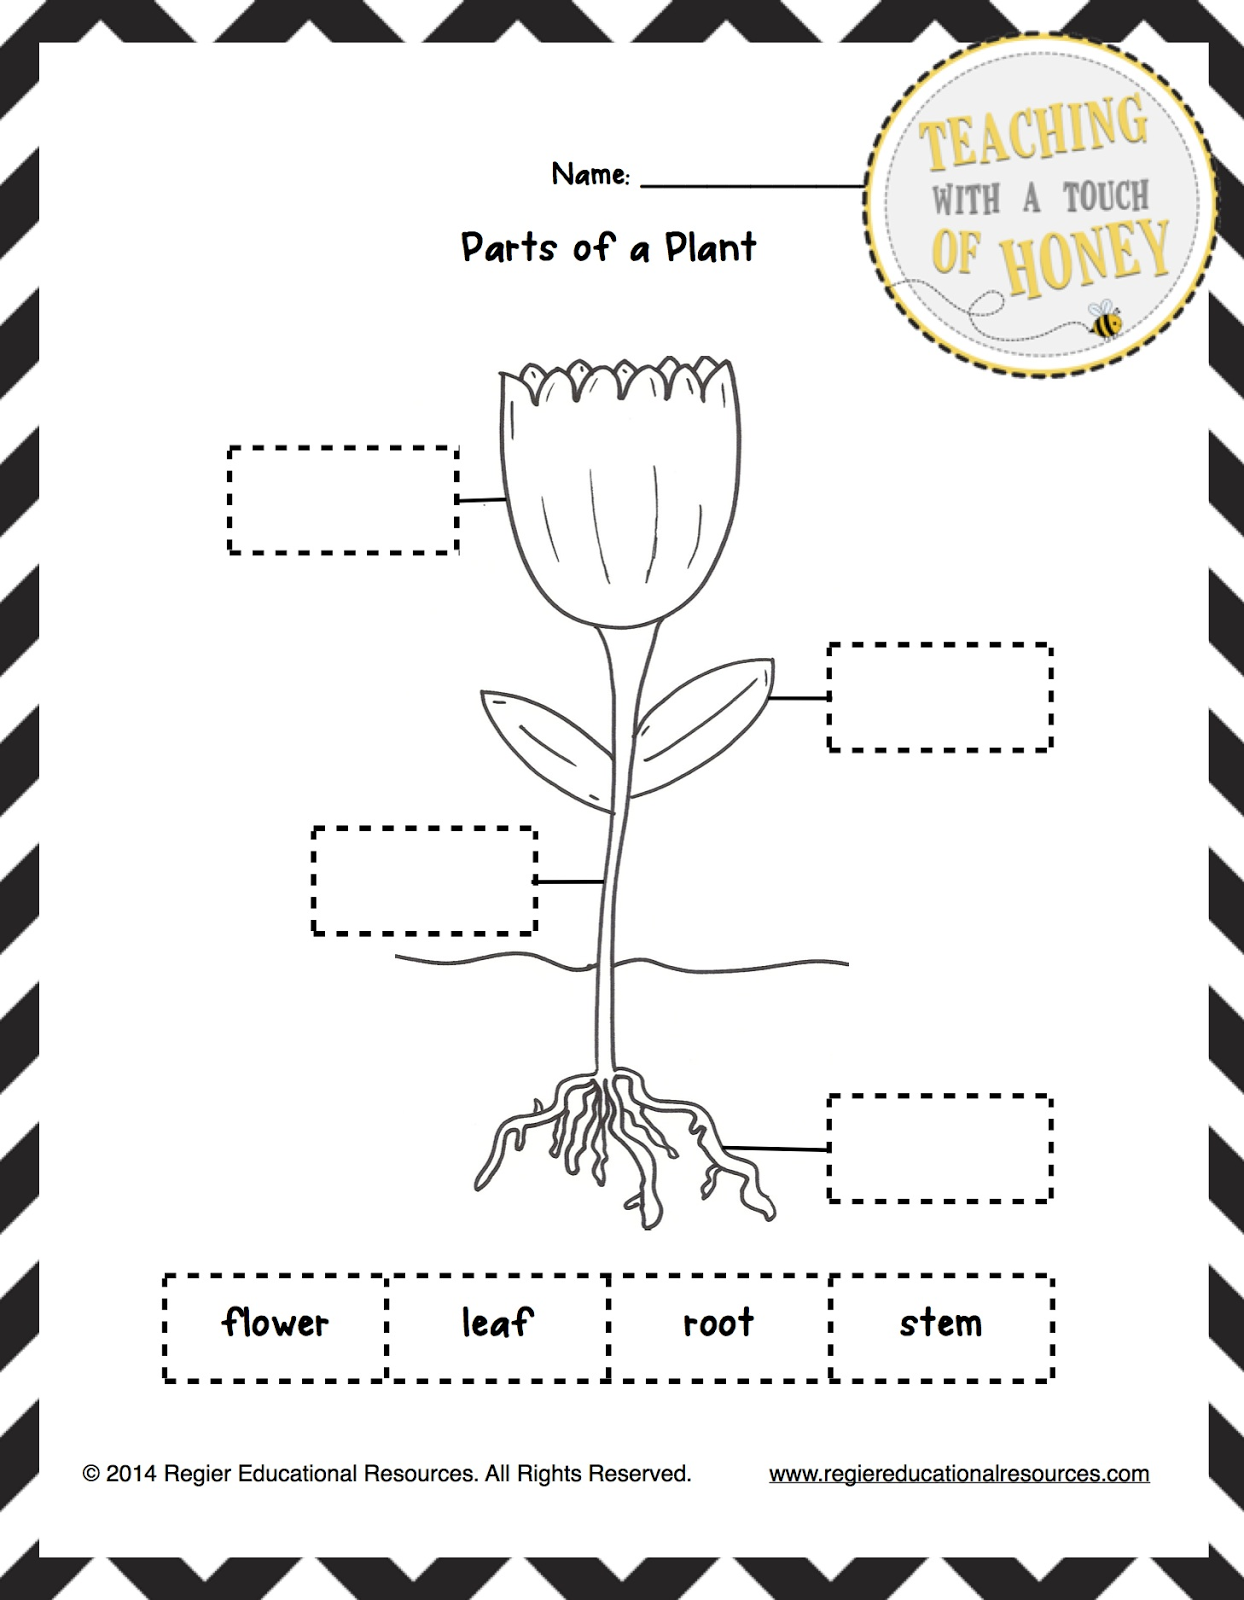 science worksheets grade 2 plants science worksheets 2 grade plants. Black Bedroom Furniture Sets. Home Design Ideas